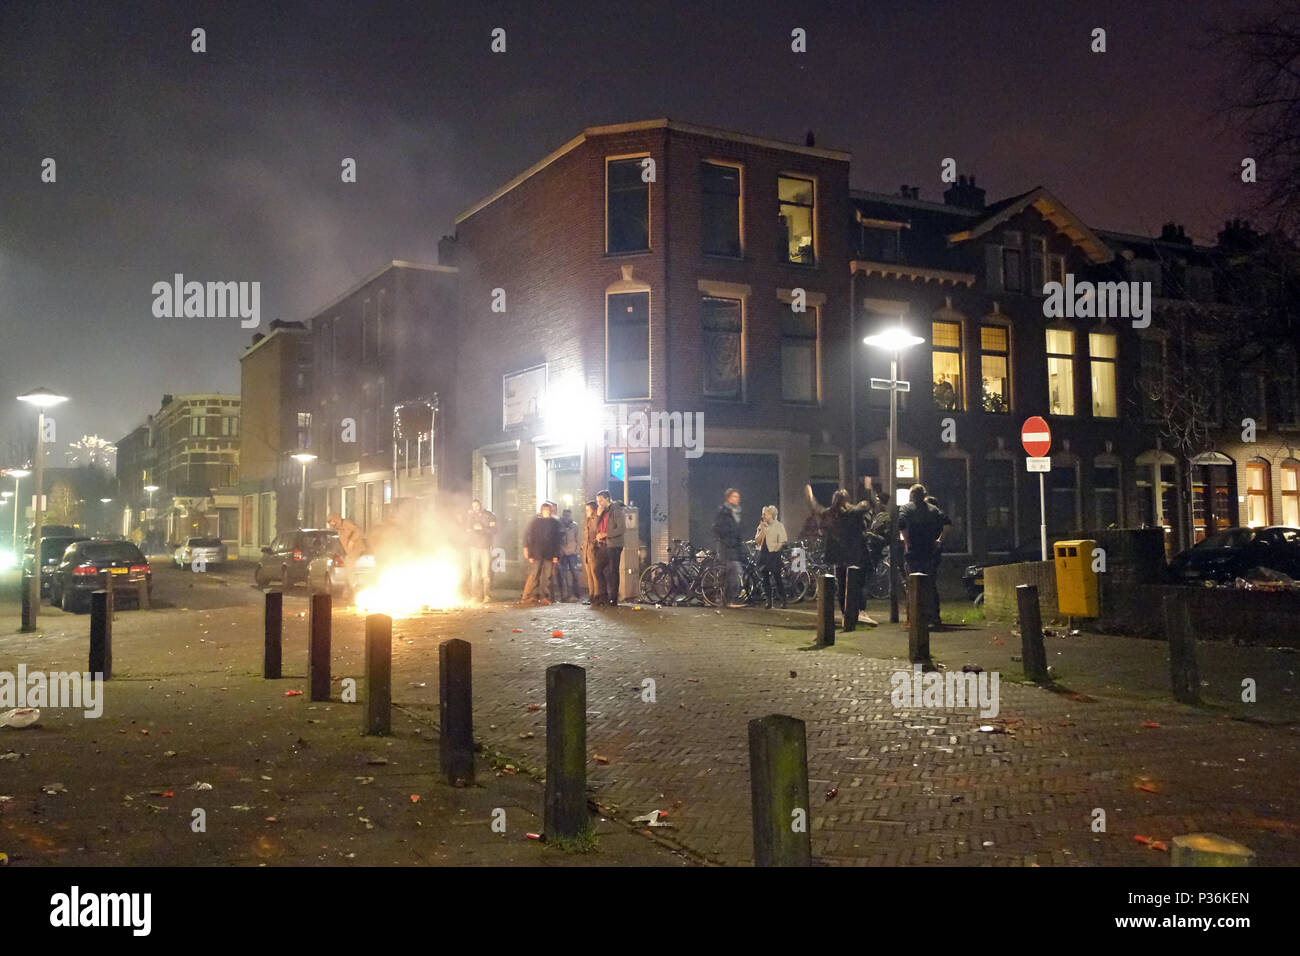 Utrecht, Netherlands, people are celebrating New Year's Eve on the street - Stock Image